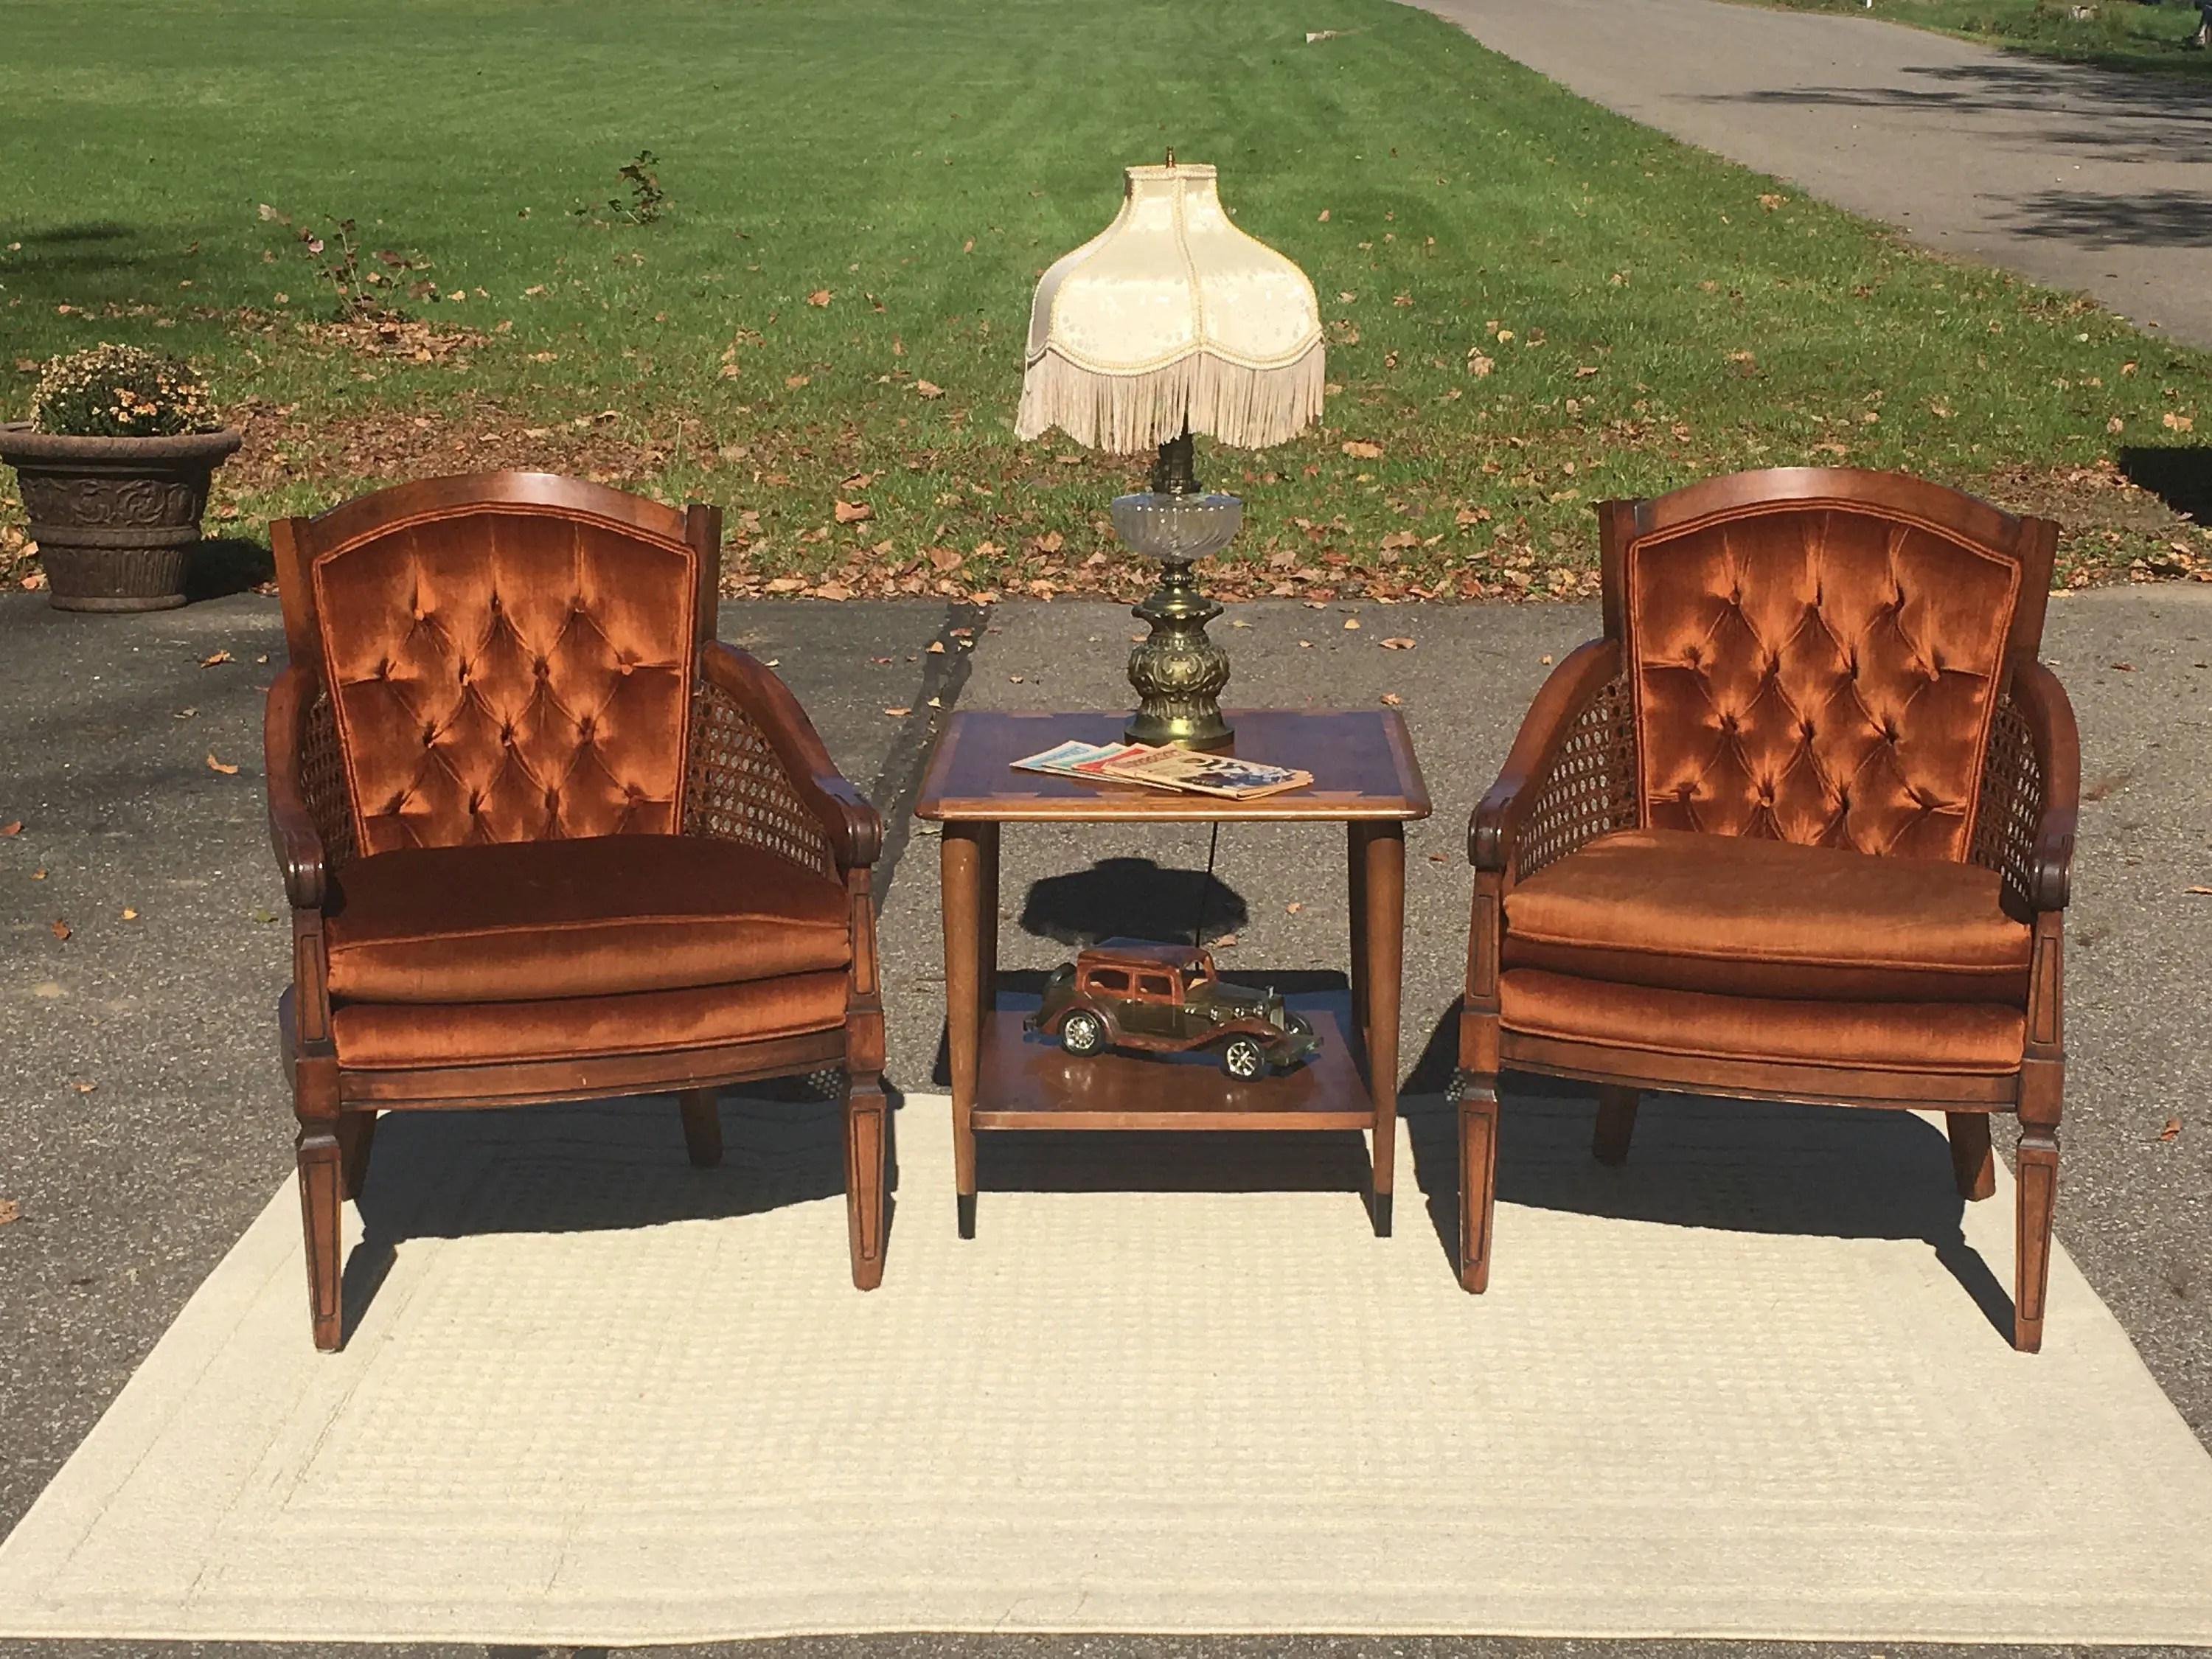 Vintage Accent Chair Vintage Rattan Velvet Chair Mid Century Furniture Brown Copper